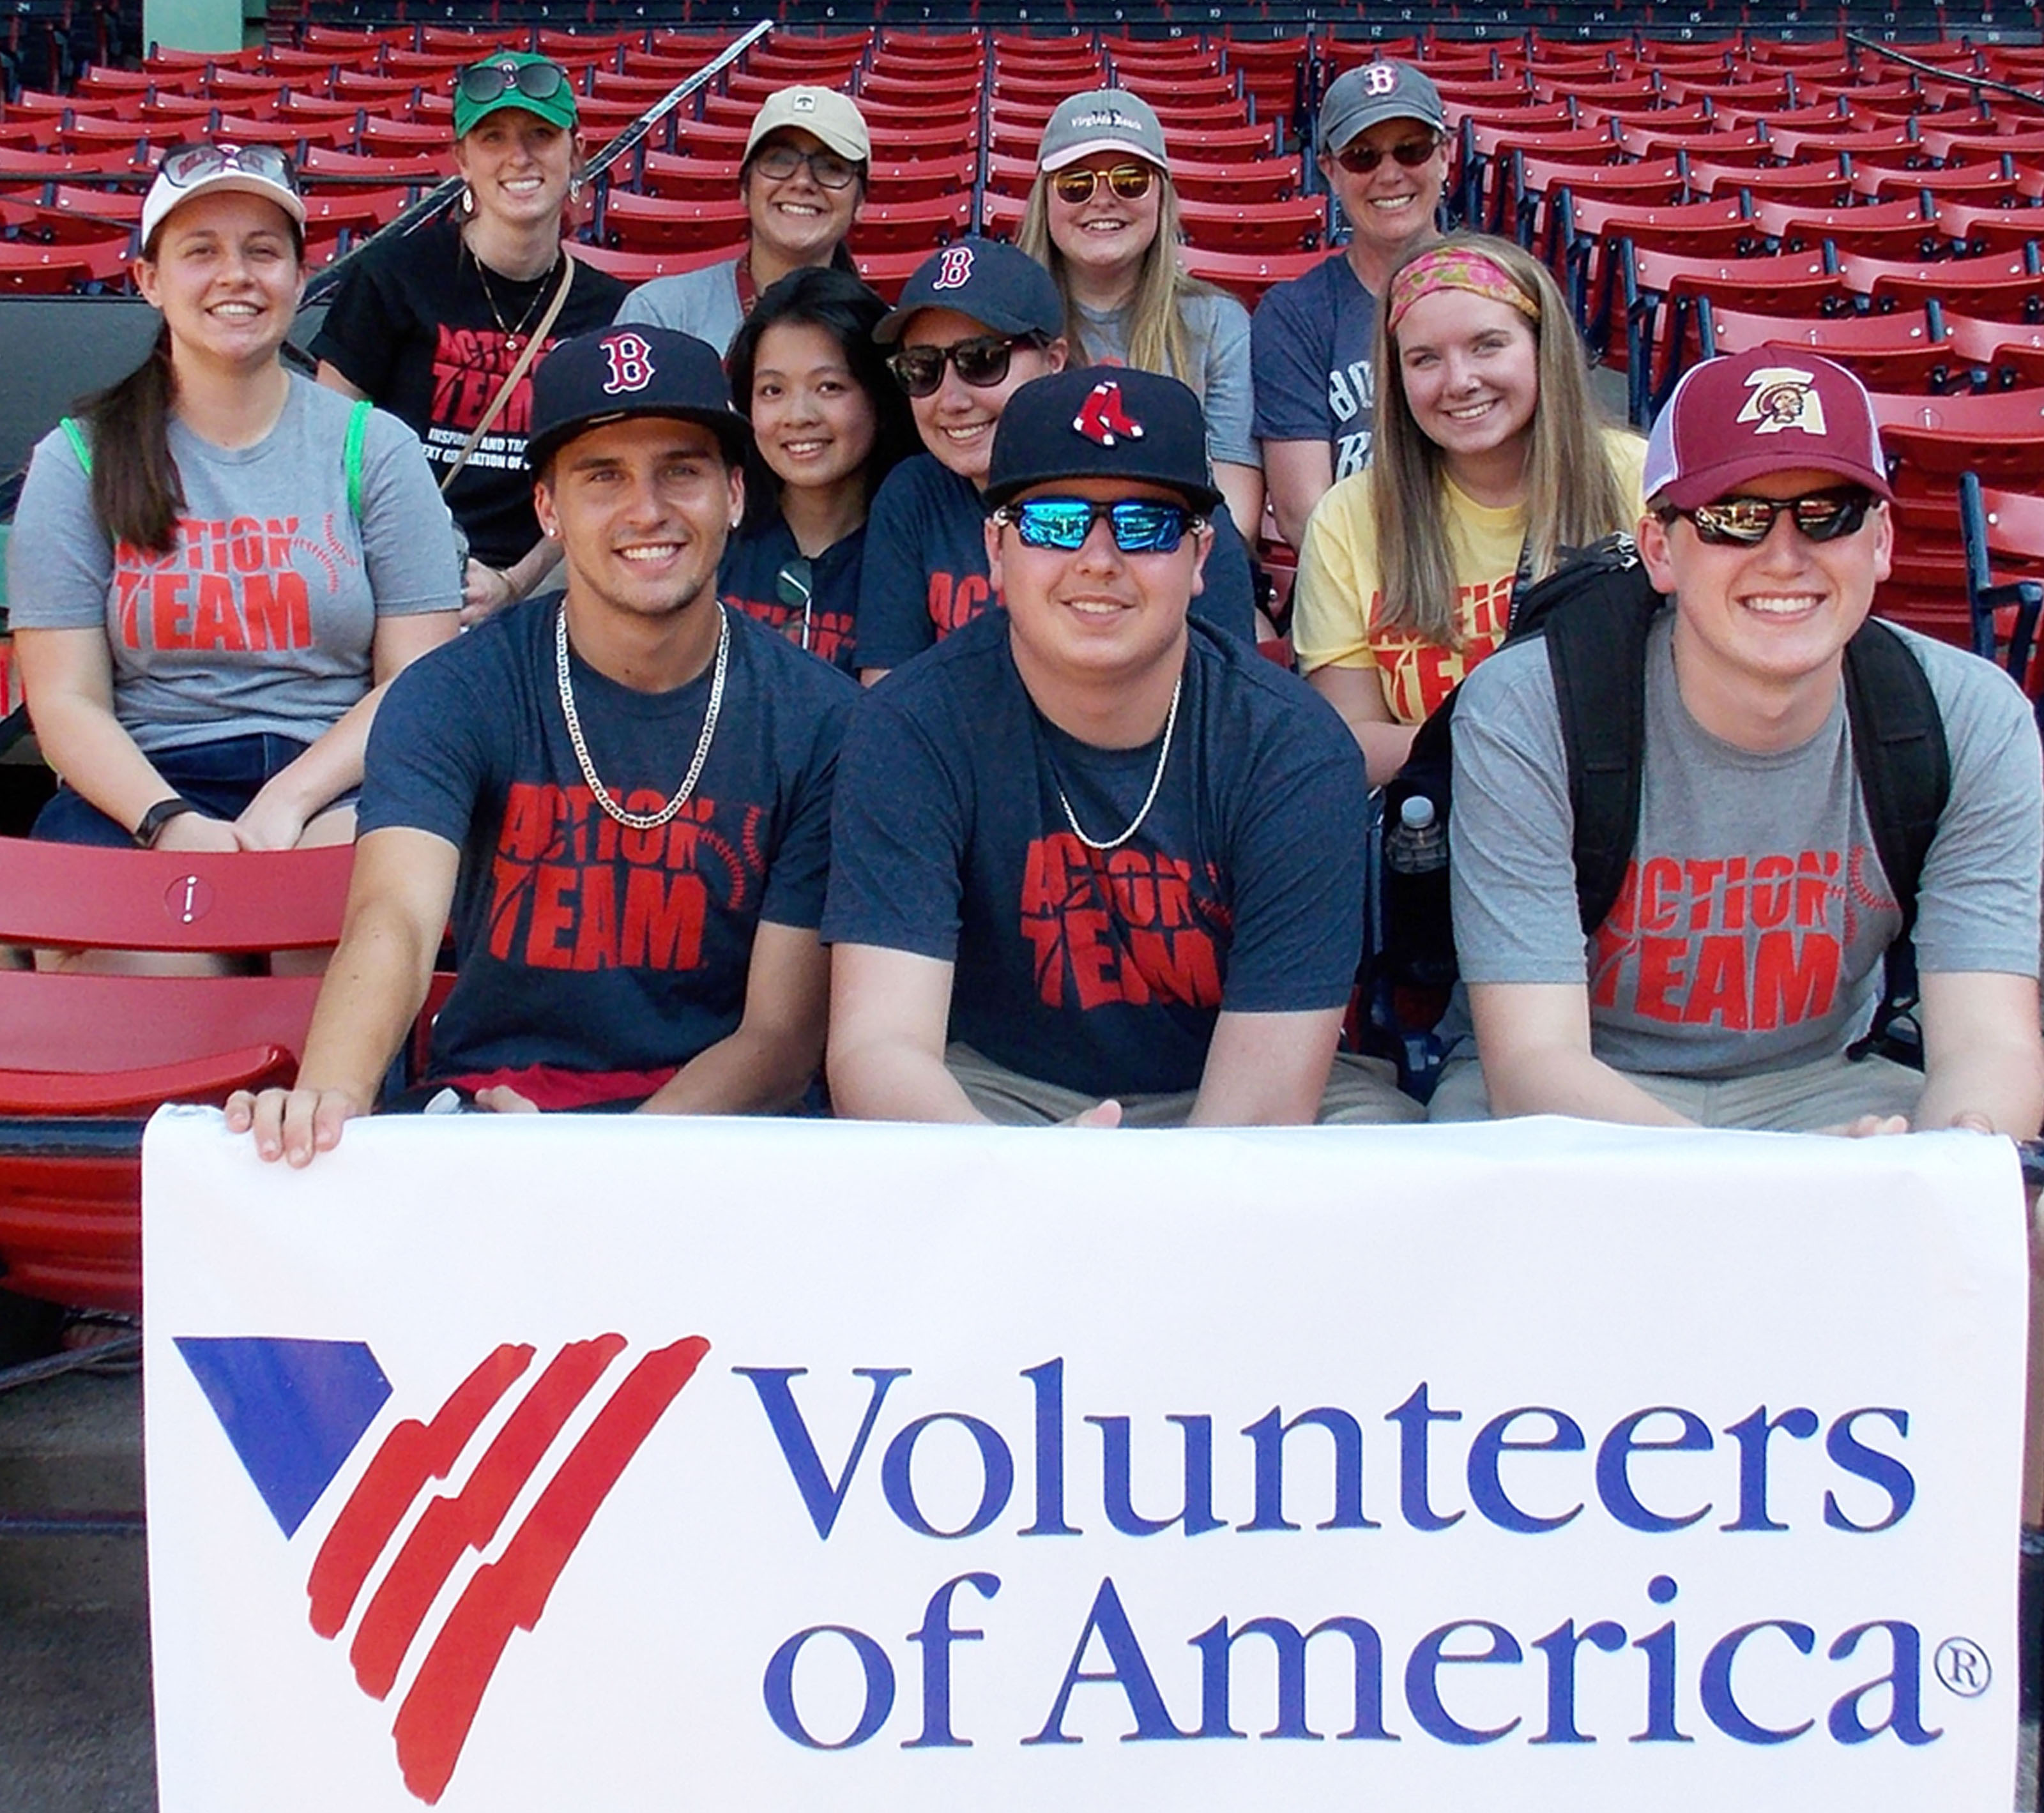 Action Team members sit with their advisors during batting practice. Front, from left, are: Noah Logan, Justin Logan, and Ethan Logan. Second row, from left, are: Elizabeth Roy, An Vu Thien Ho, Molly Jacques, and Adella Page-Ryea. Third row, from left, are: advisor Kaitlyn Hall, Annie Karim, Kayla Strout, and advisor Mary Ann Martin. LINDSEY HALL/Journal Tribune